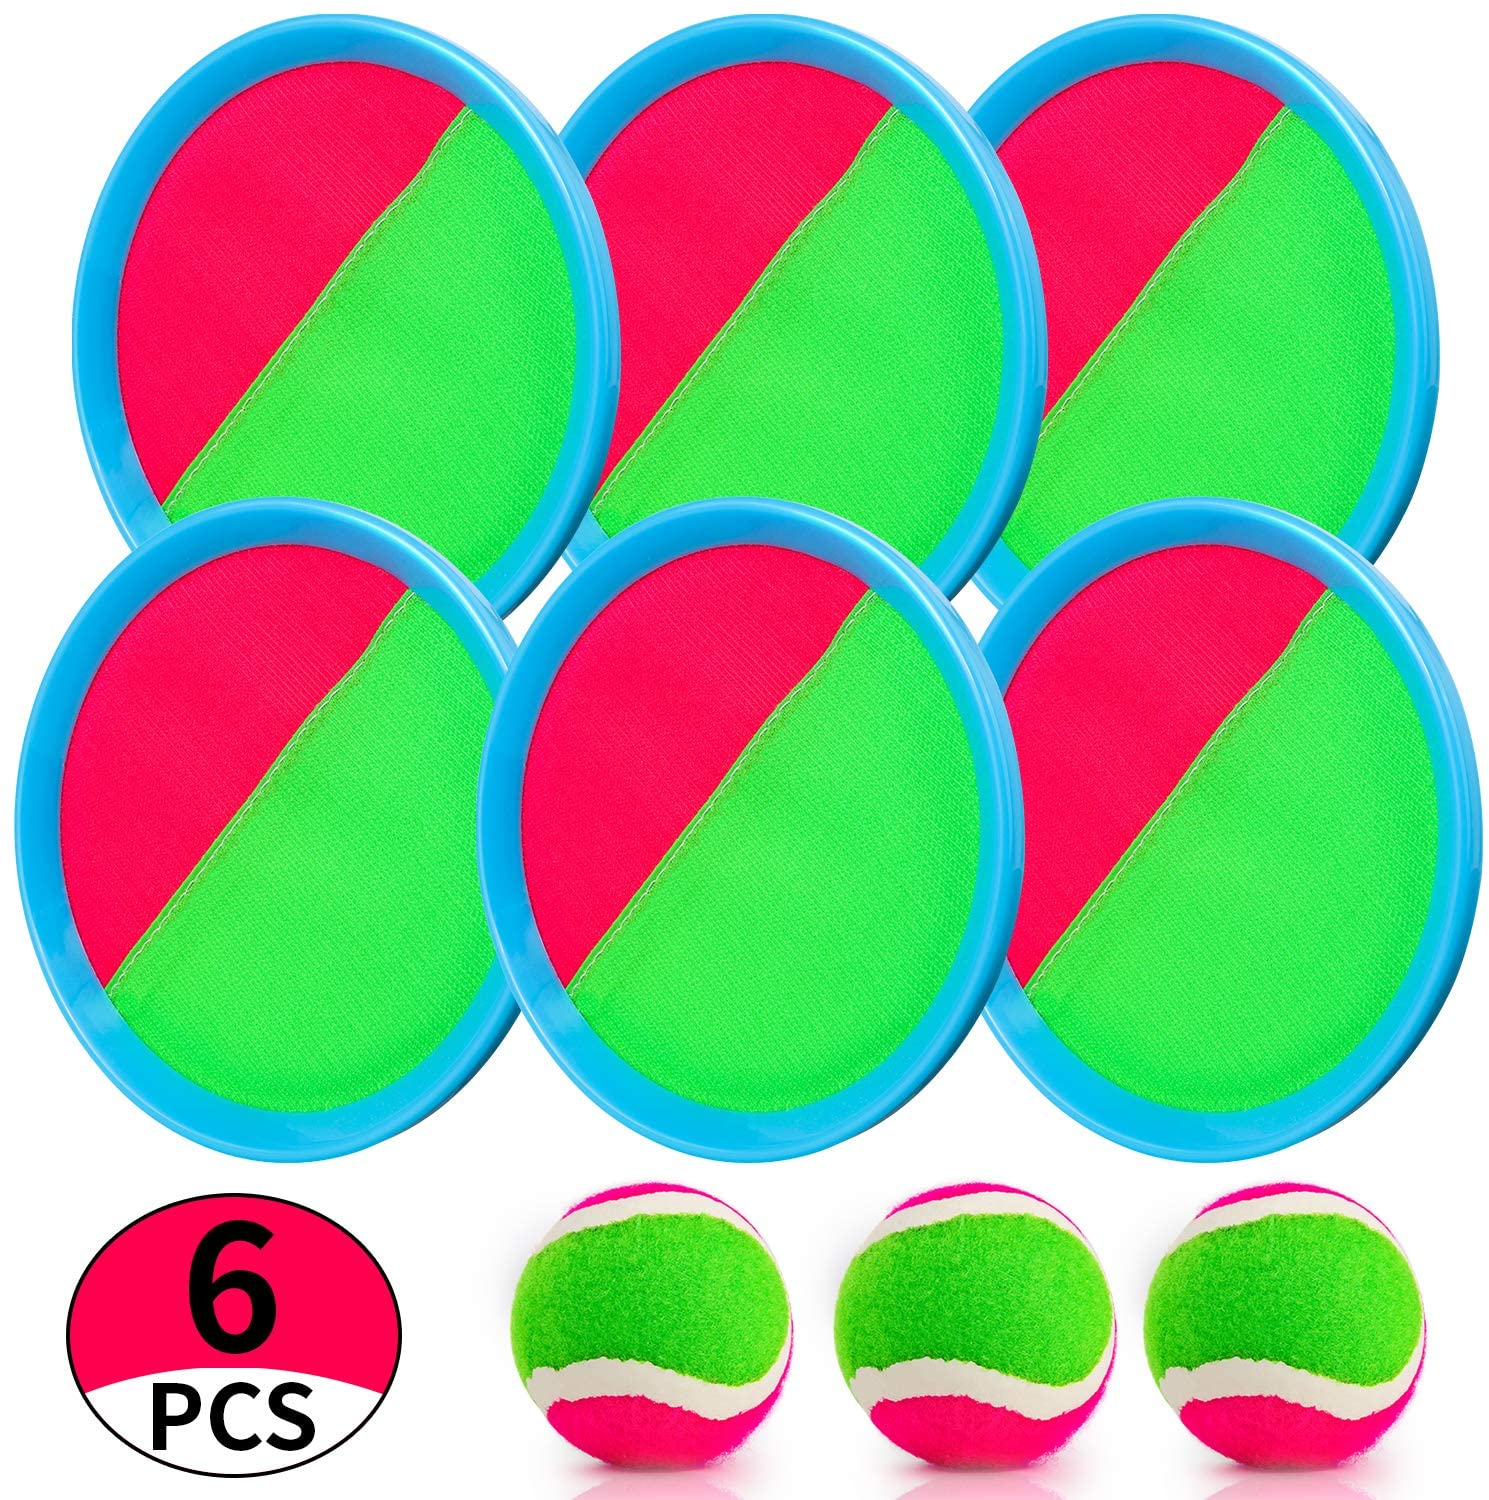 Aywewii Velcro Ball and Catch Game, Toss and Catch Ball Set Paddle Ball Game Set with 6 Paddles 3 Balls, Perfect Outdoor Games Toys Gift for Kids/Adults